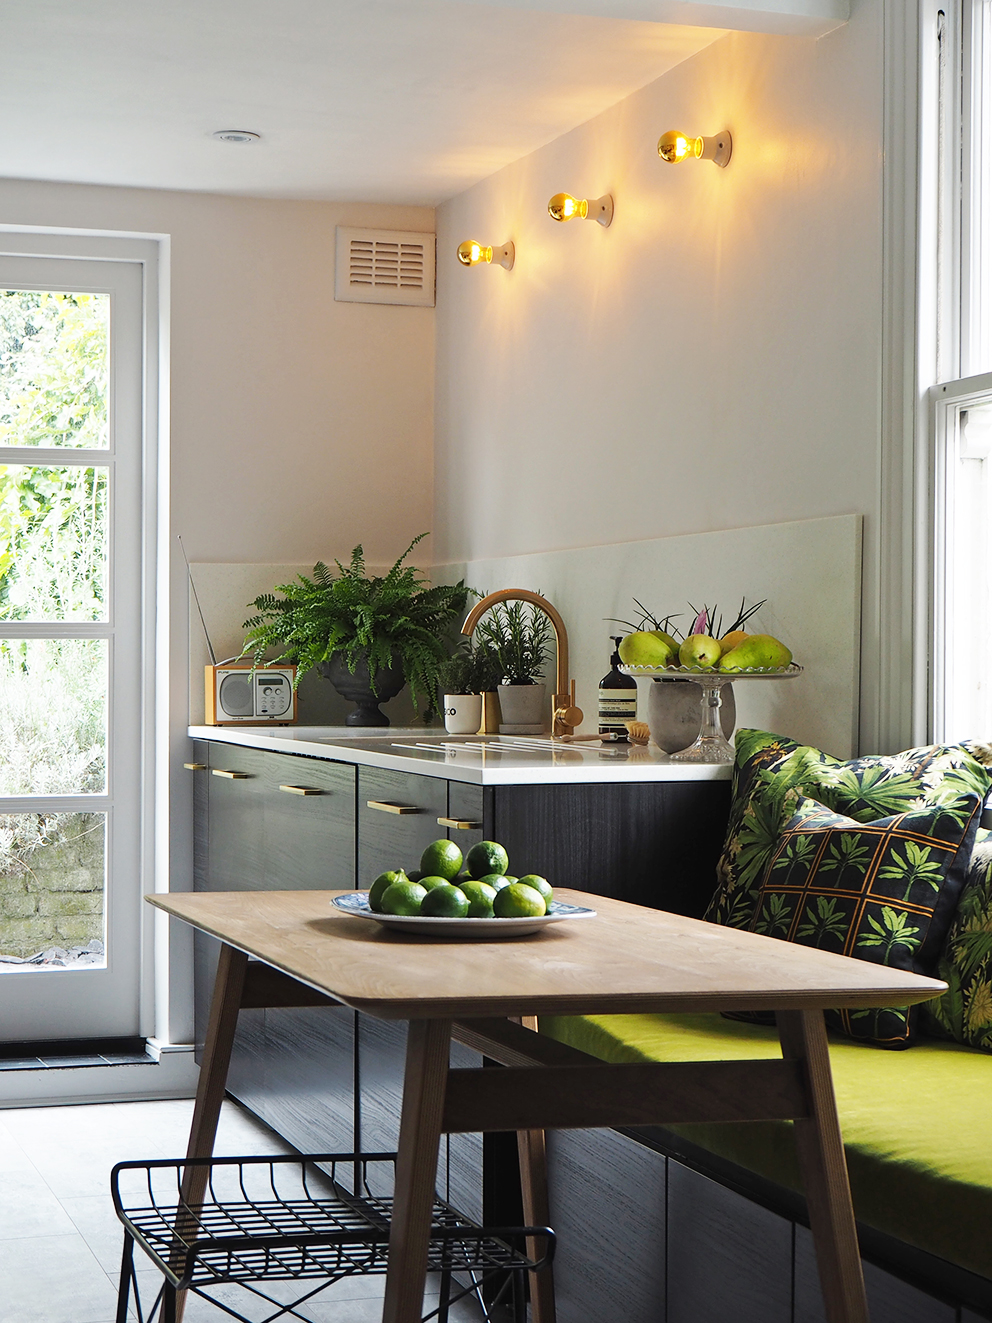 French For Pineapple Blog - kitchen refit with cool contemporary lighting, gold tap and flecked Mistral Mist worksurface and splashback